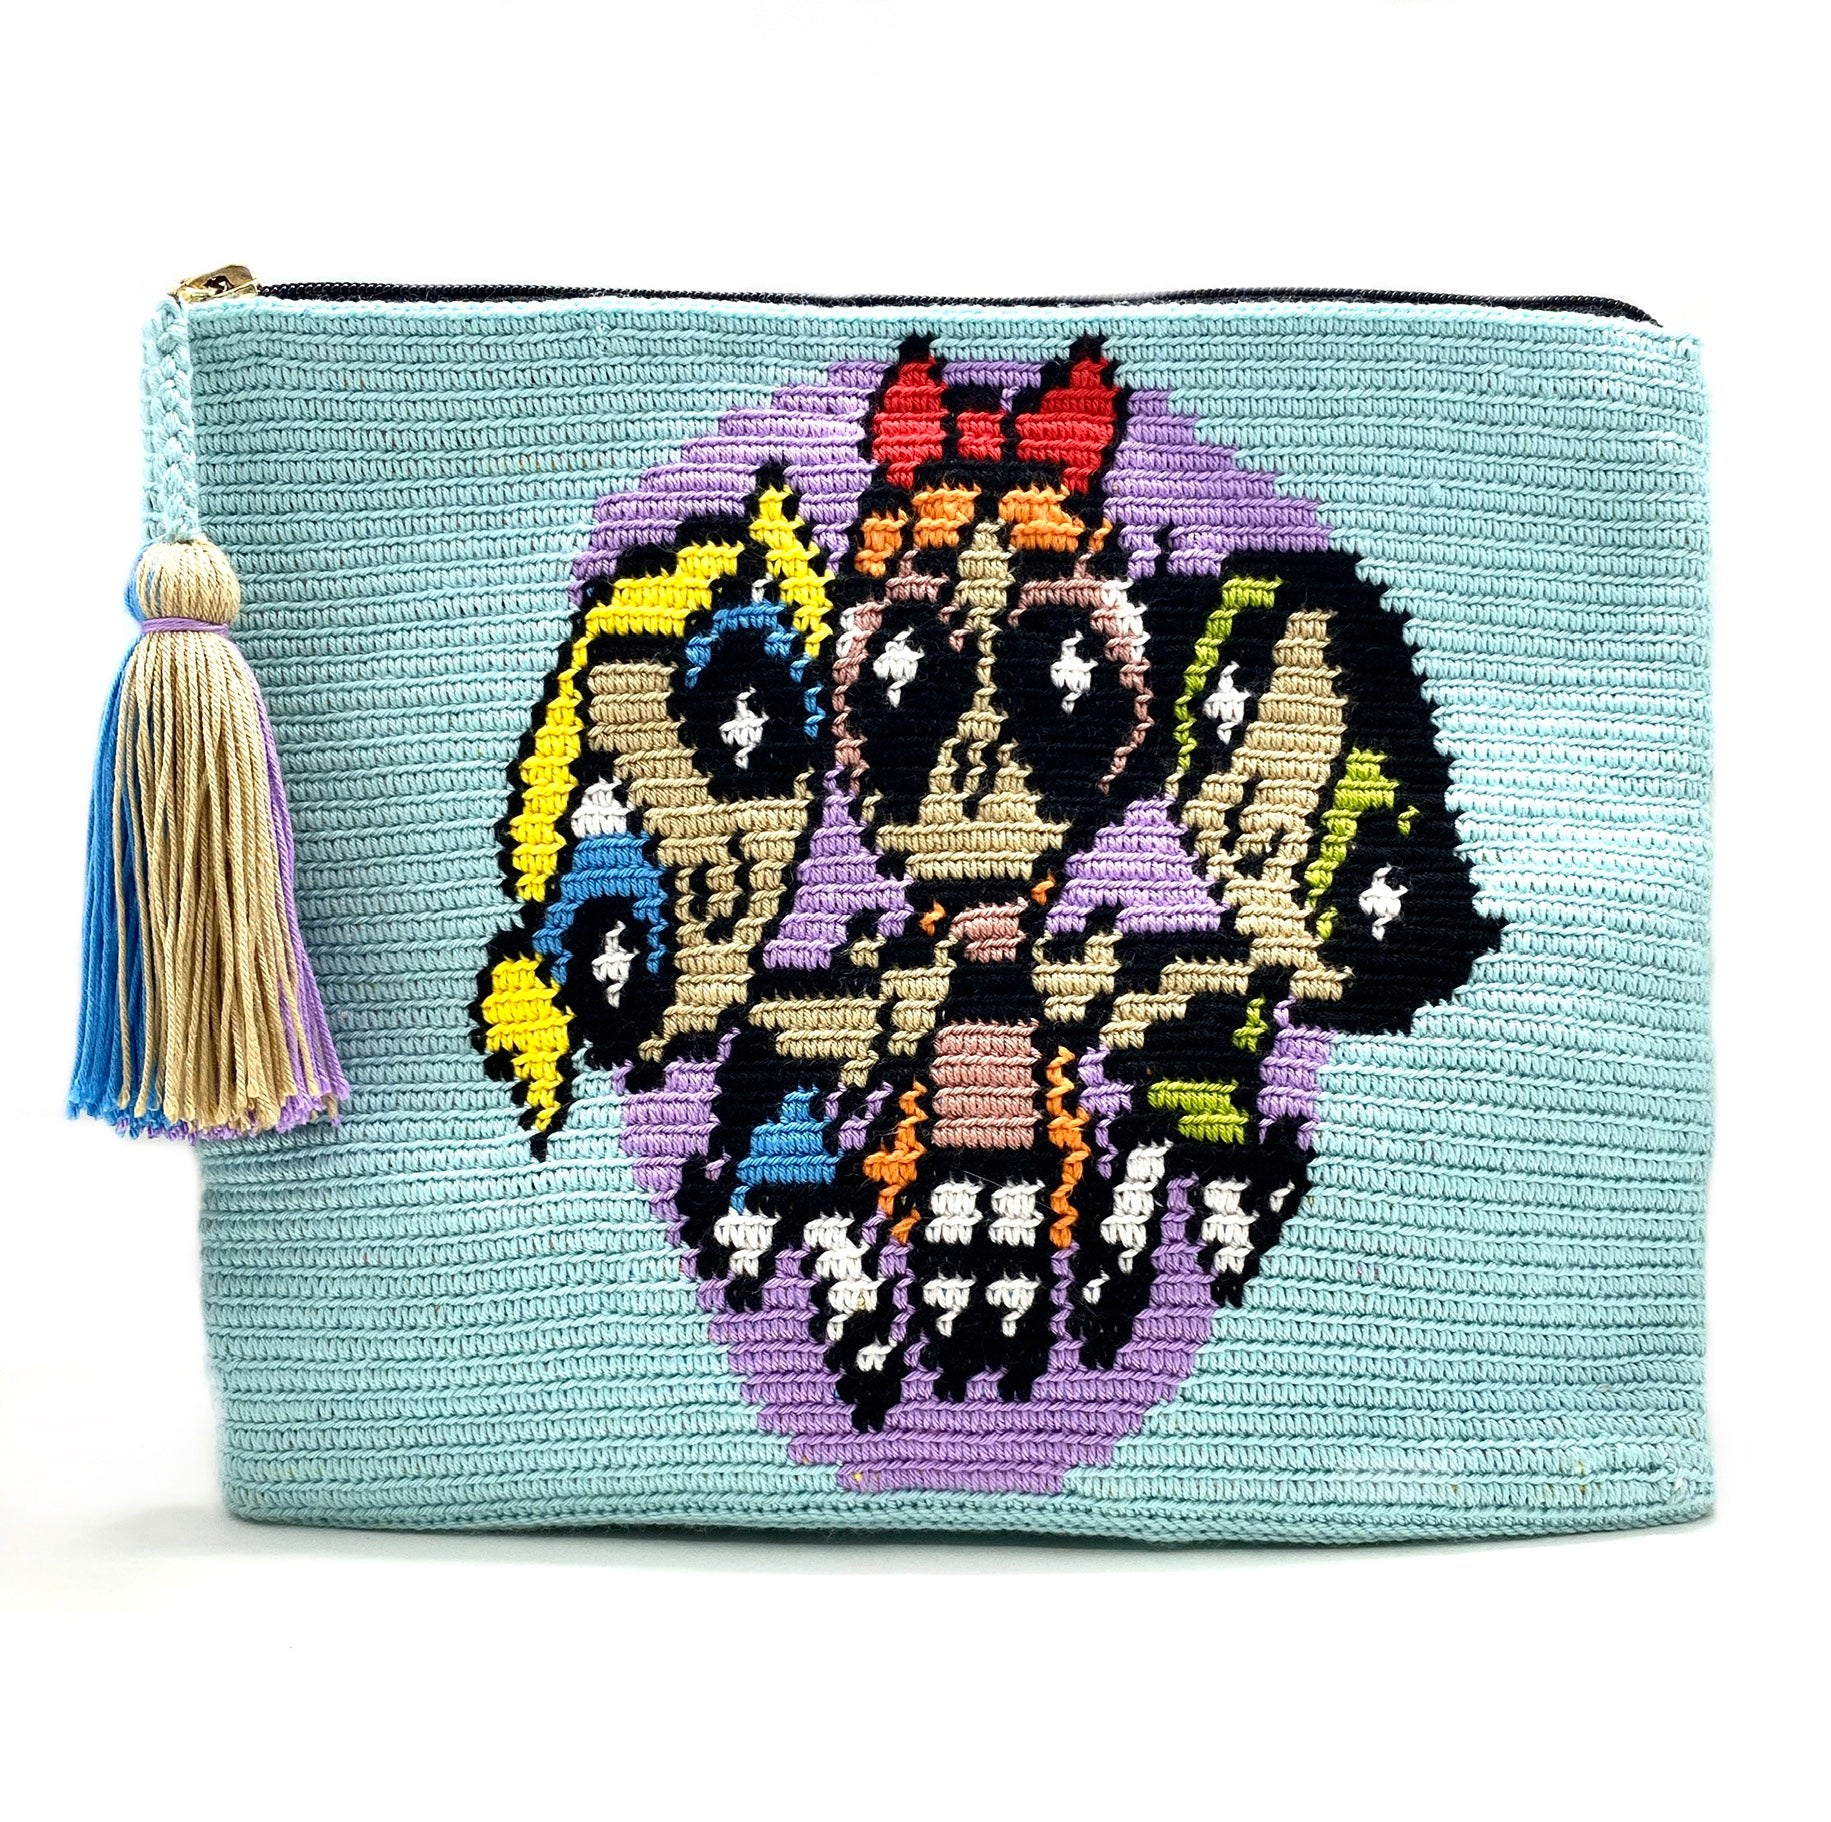 Power puff clutch, lavender circle, sky blue body with tassel.